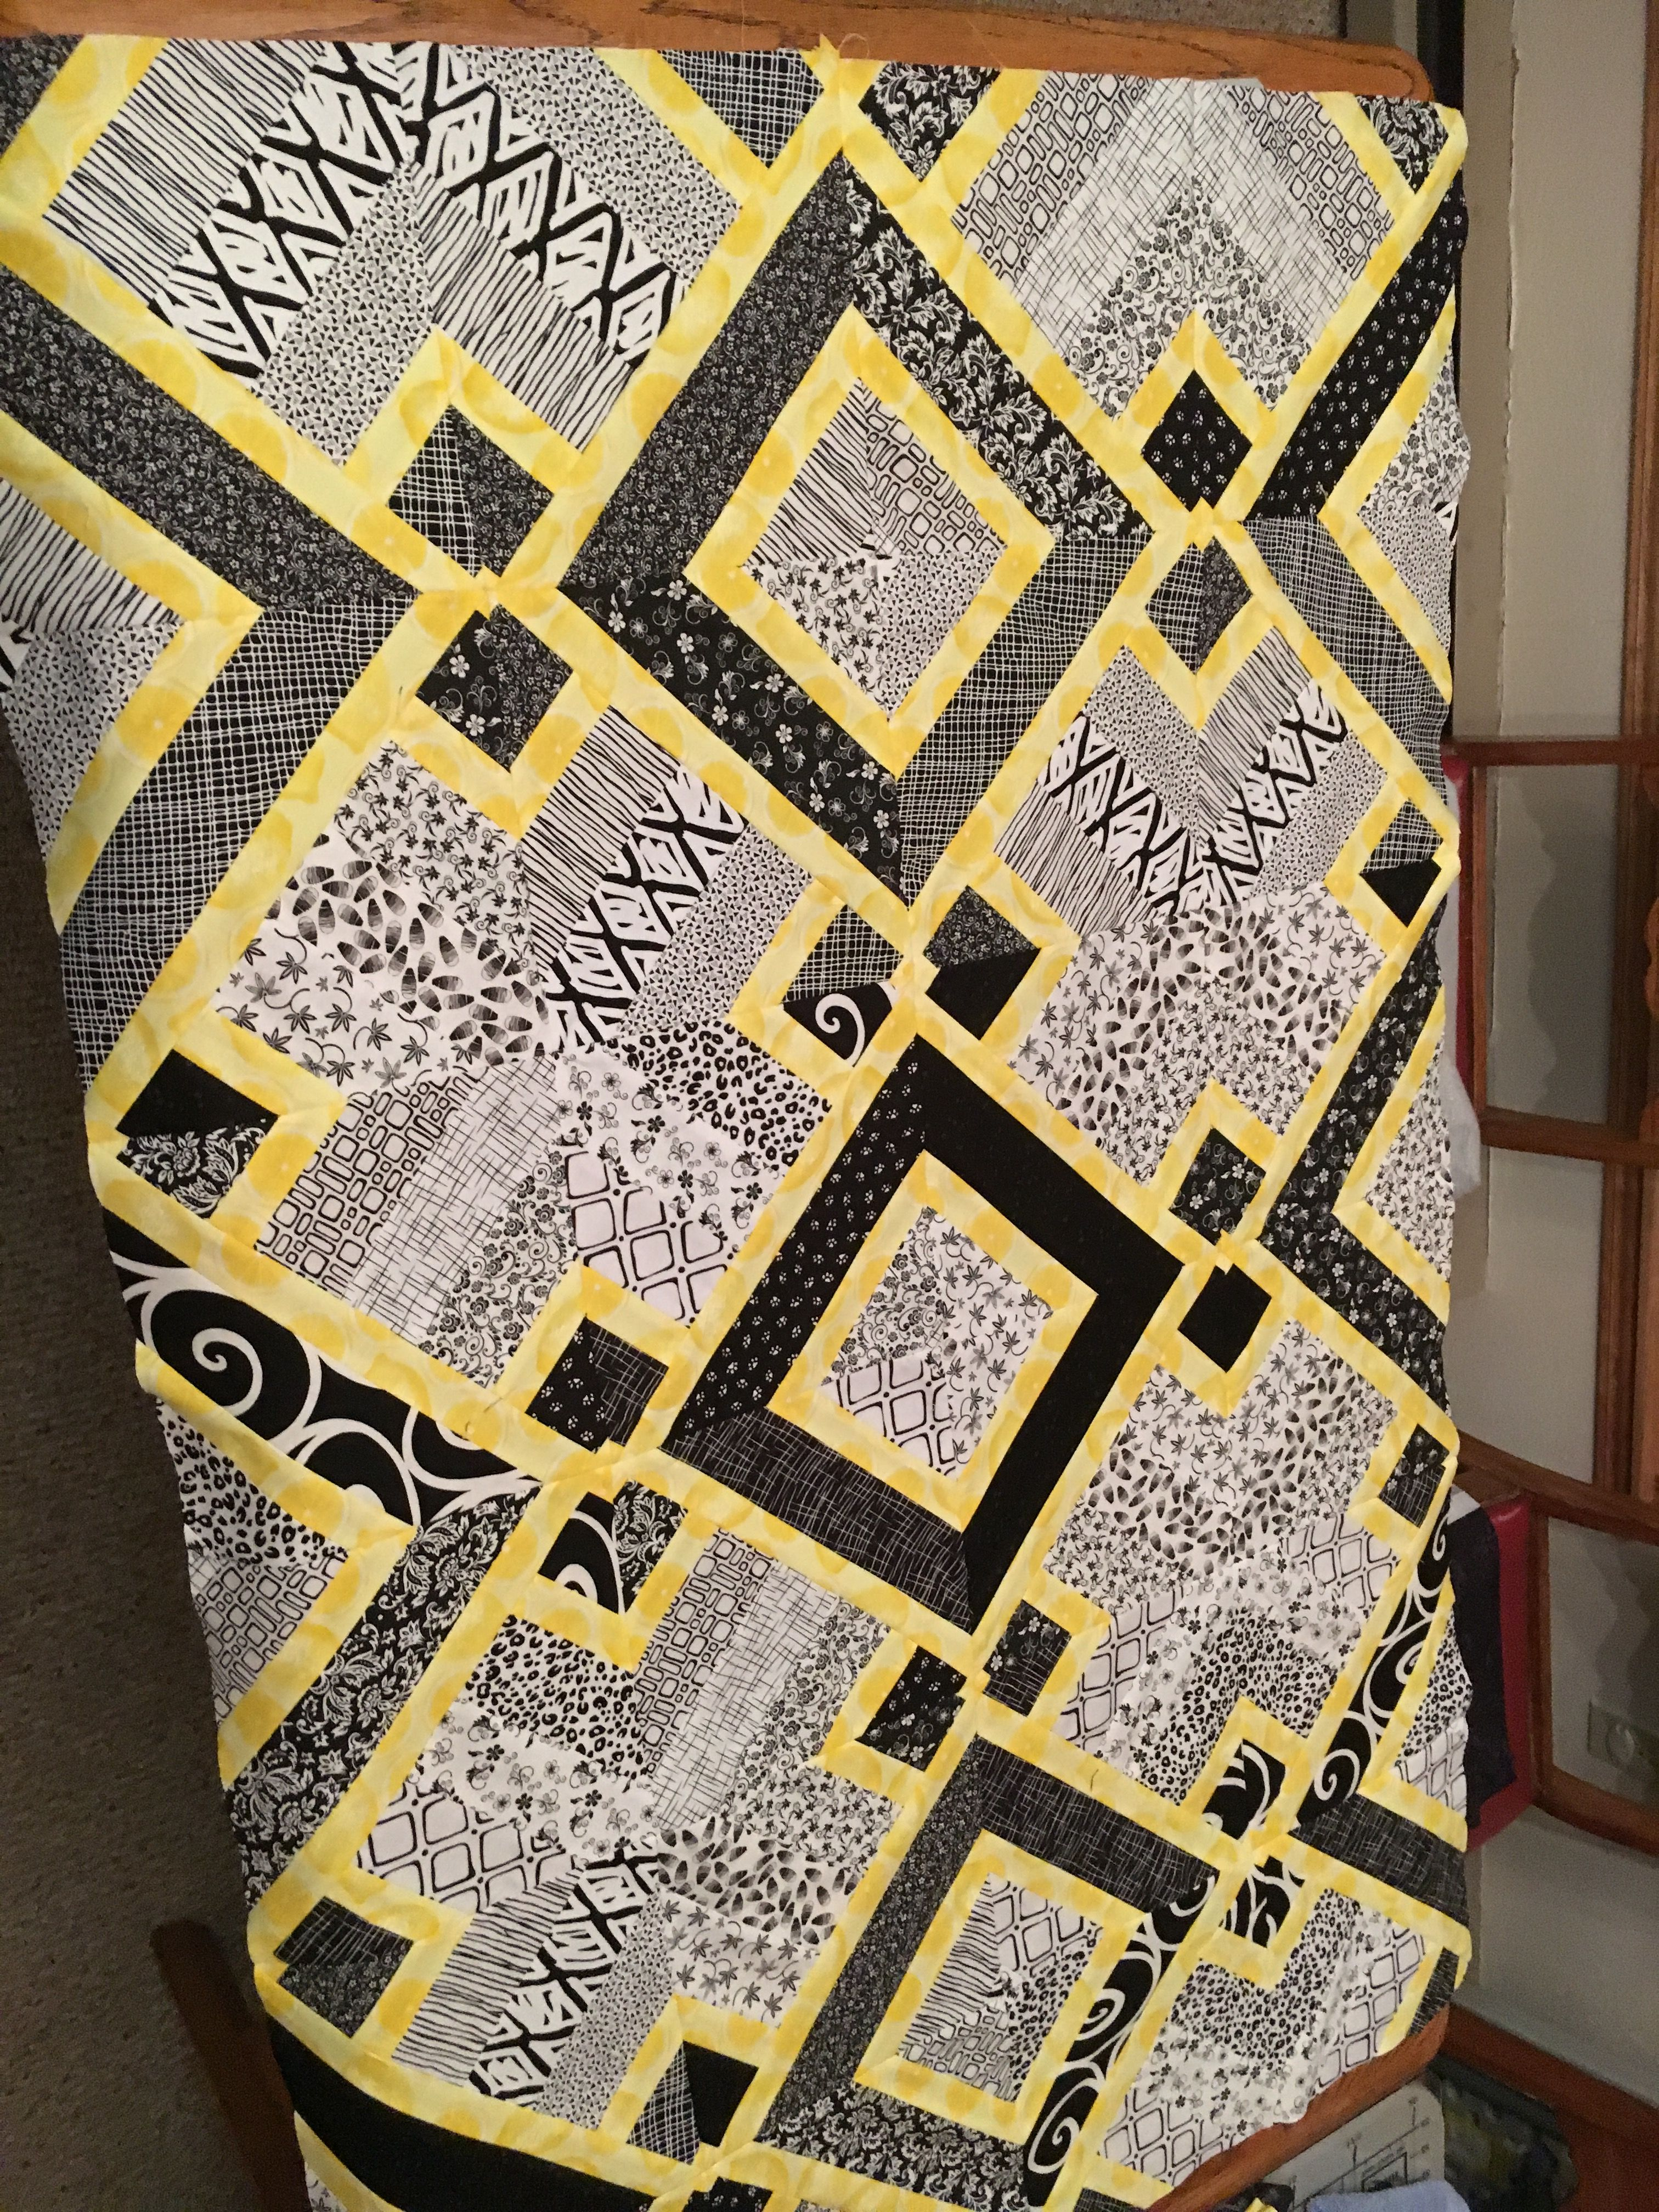 Used Rob Appell's 3 Dudes quilt pattern from Missouri Star